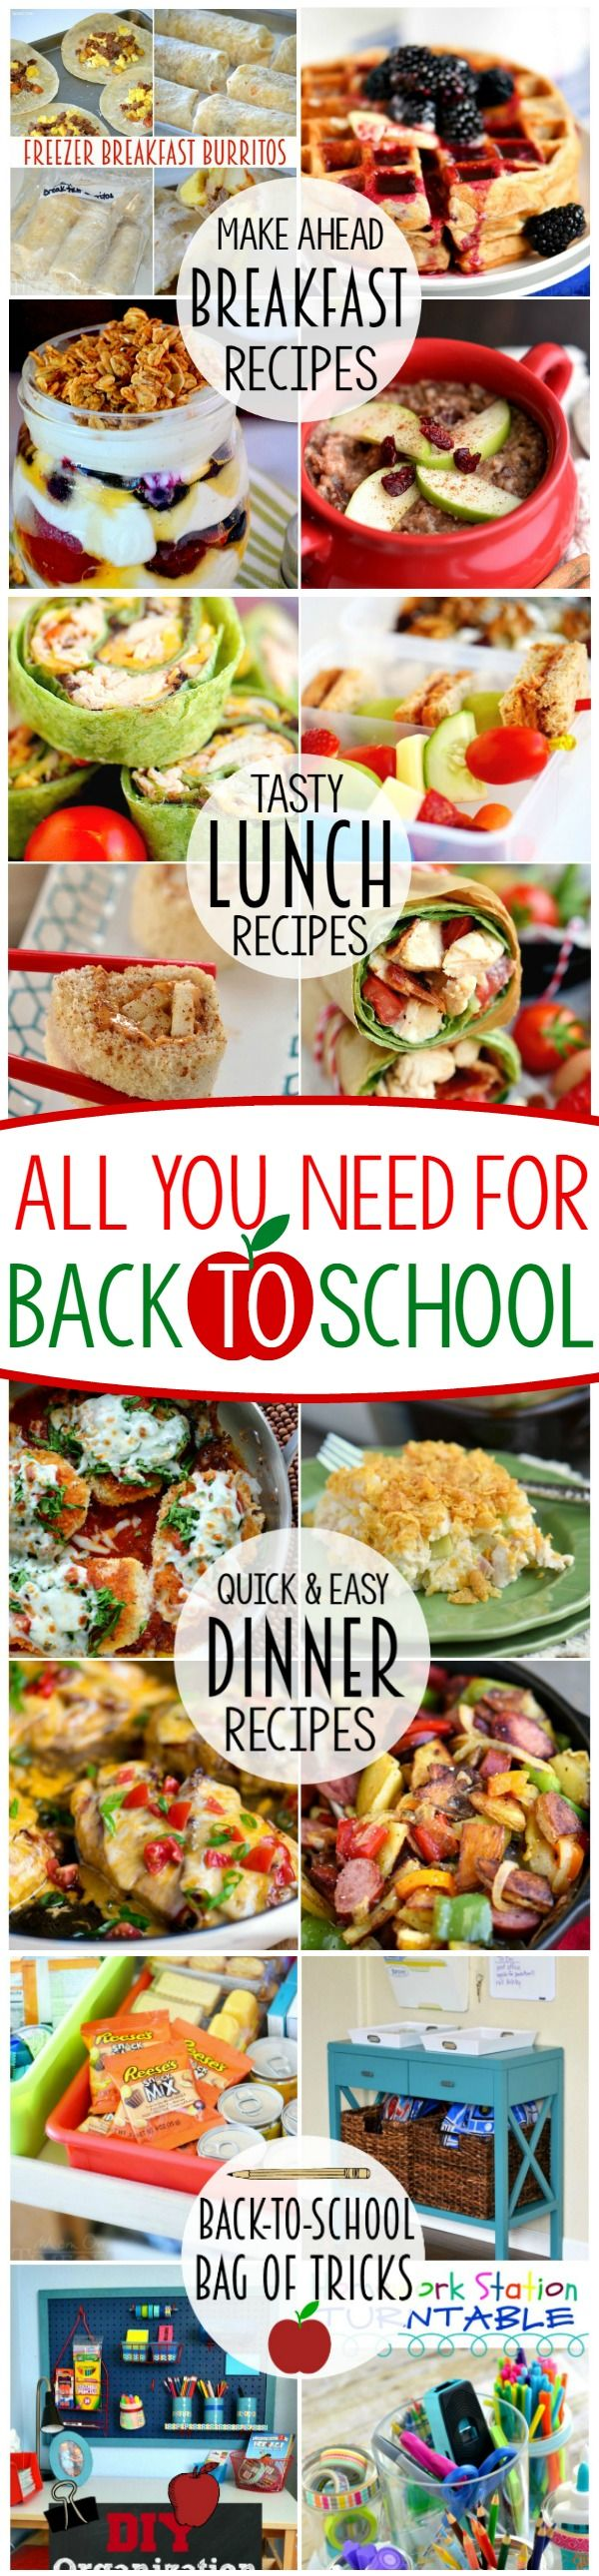 Everything you need for a successful back-to-school experience! Make ahead breakfast recipes, tasty lunch ideas, quick and easy dinners PLUS my favorite Back To School Mom Hacks!: